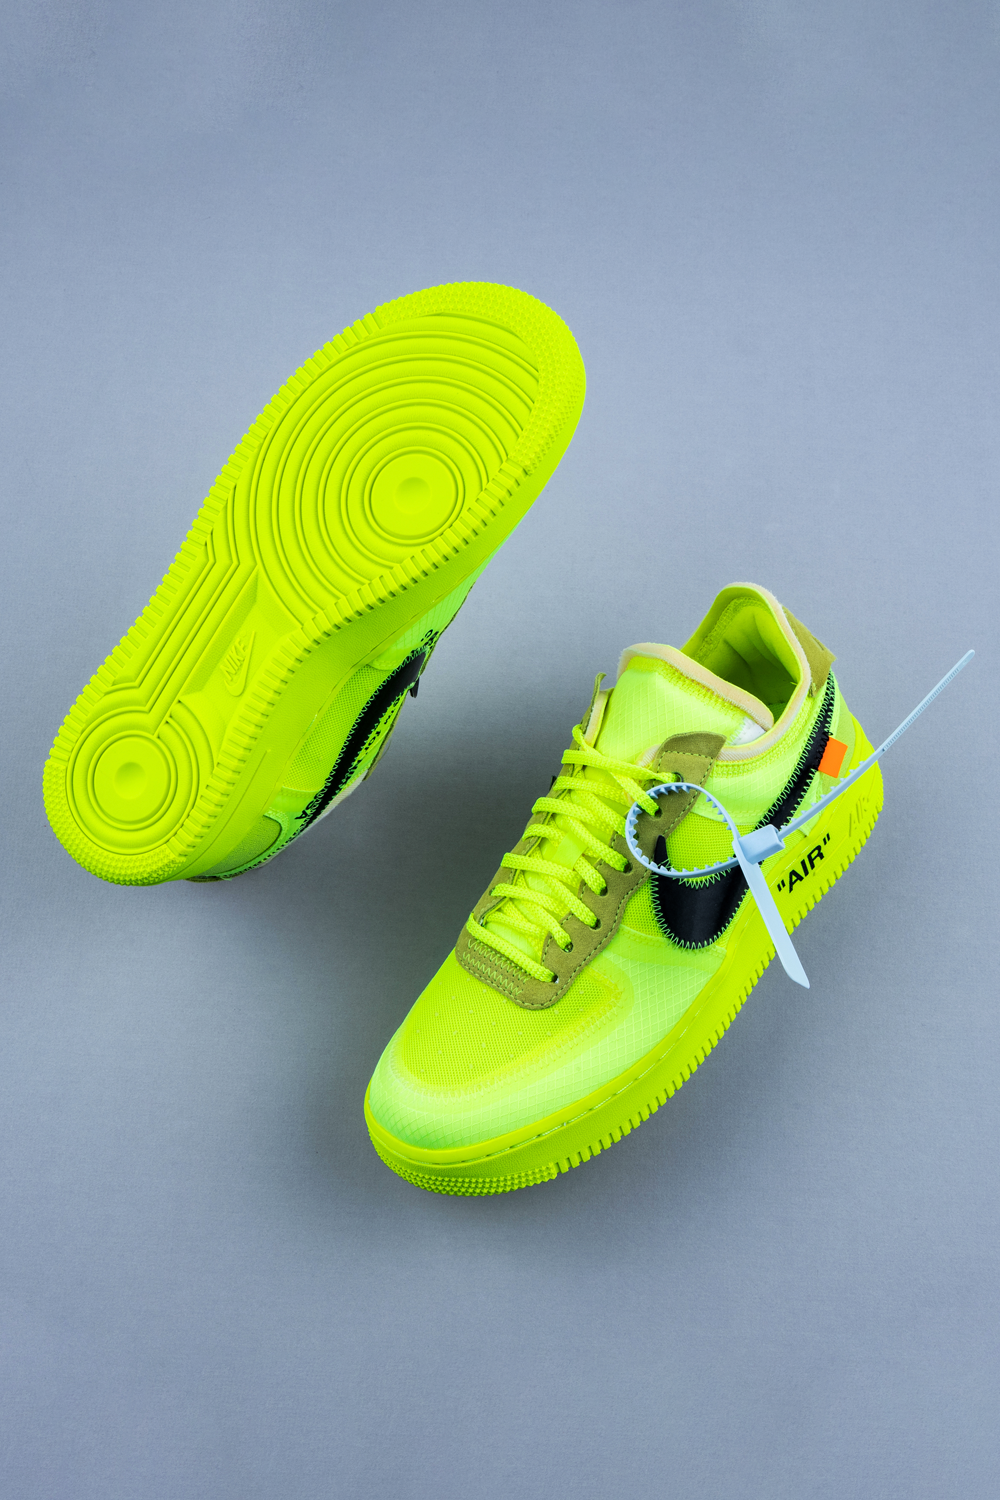 The 10 Nike Air Force 1 Low Off White Volt Ao4606 700 2018